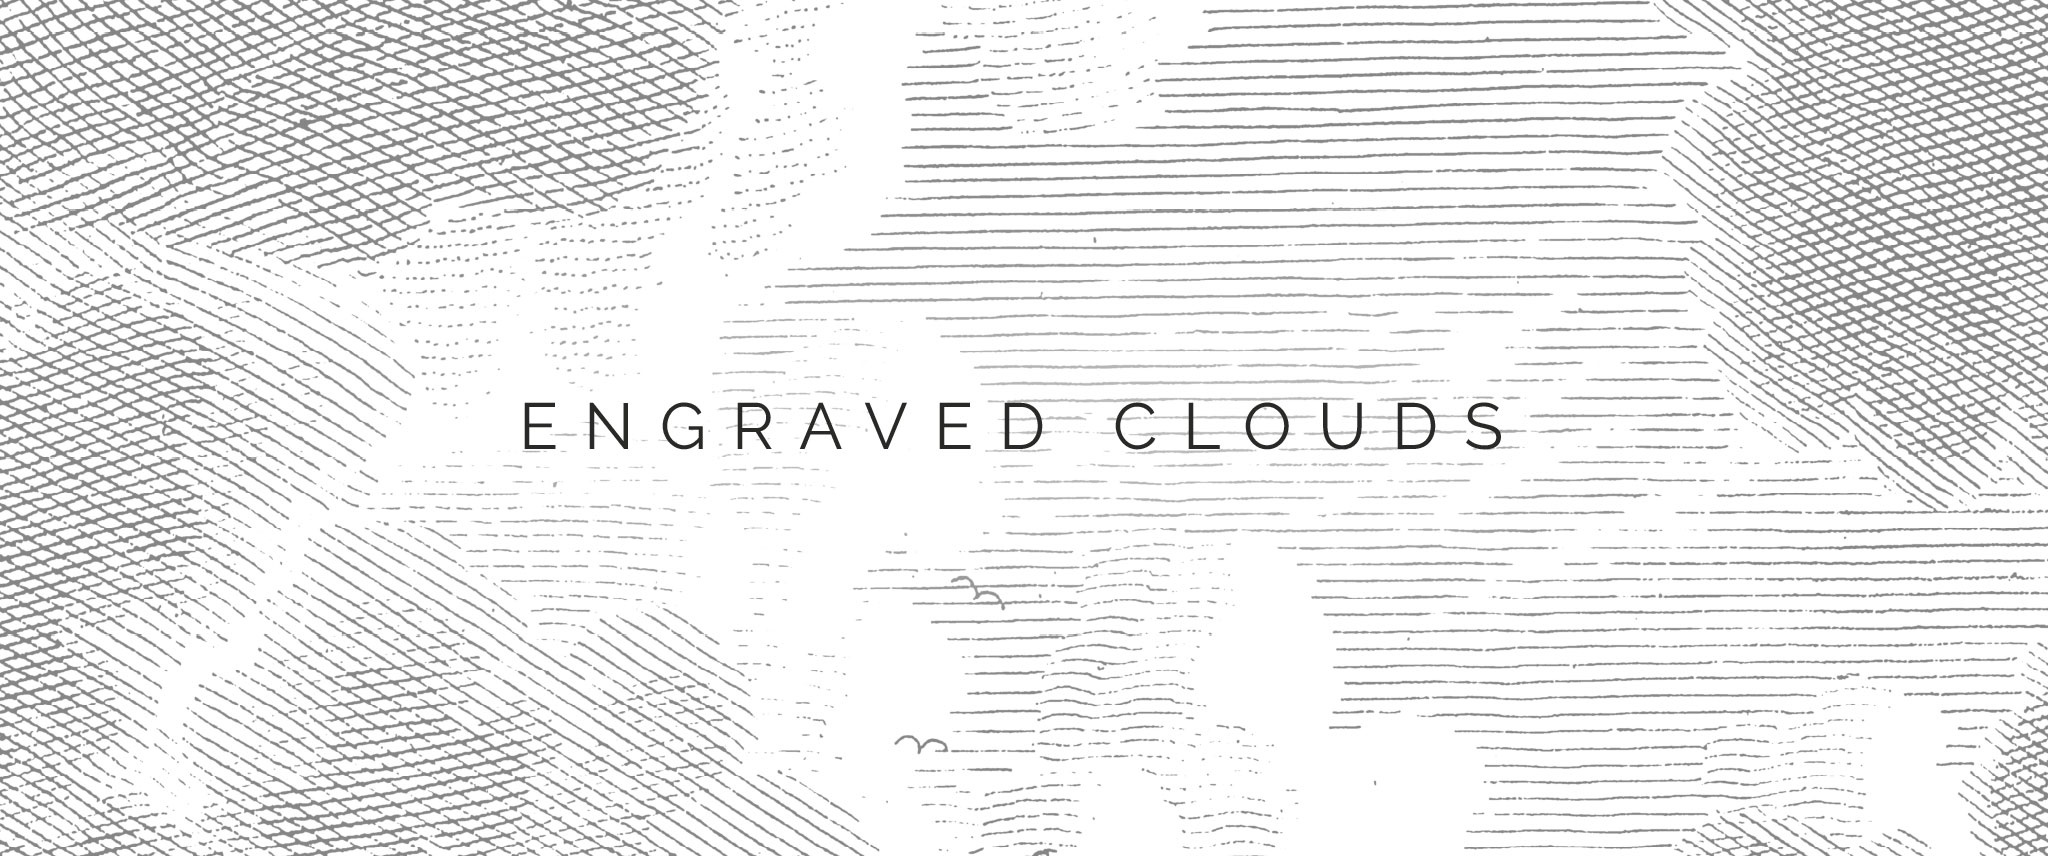 Behang Engraved Clouds